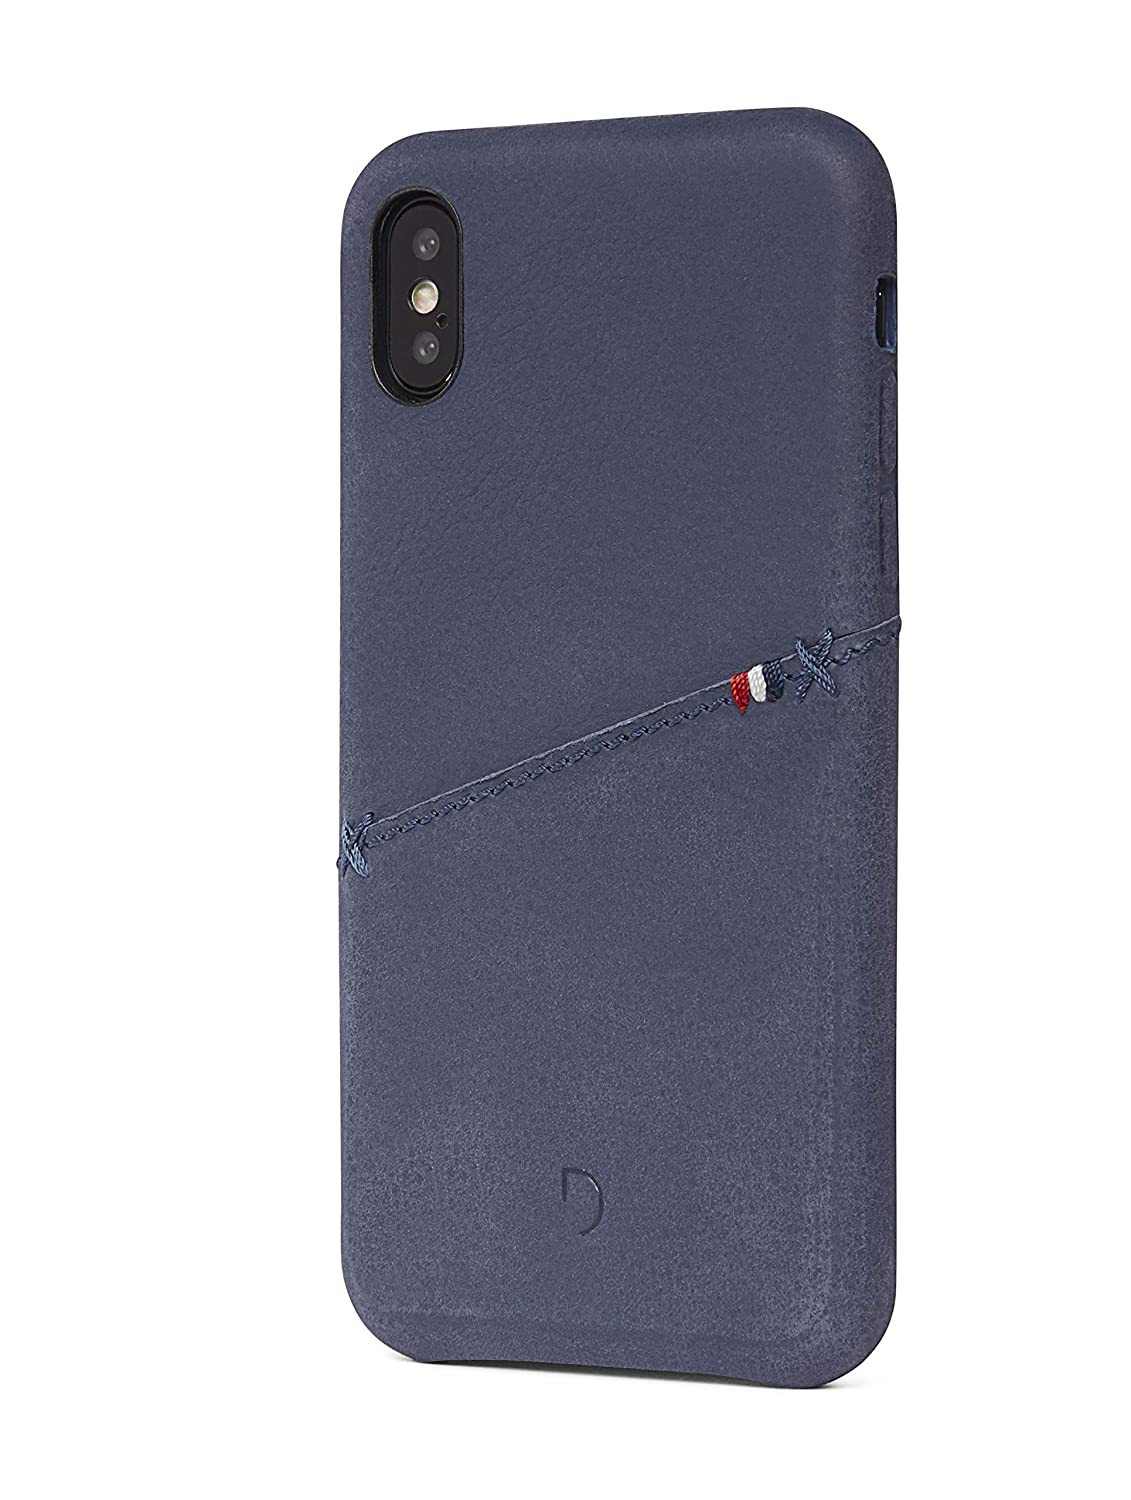 official photos 095e1 16db6 Decoded Premium Full-Grain Leather Back Cover for iPhone X (Indigo ...